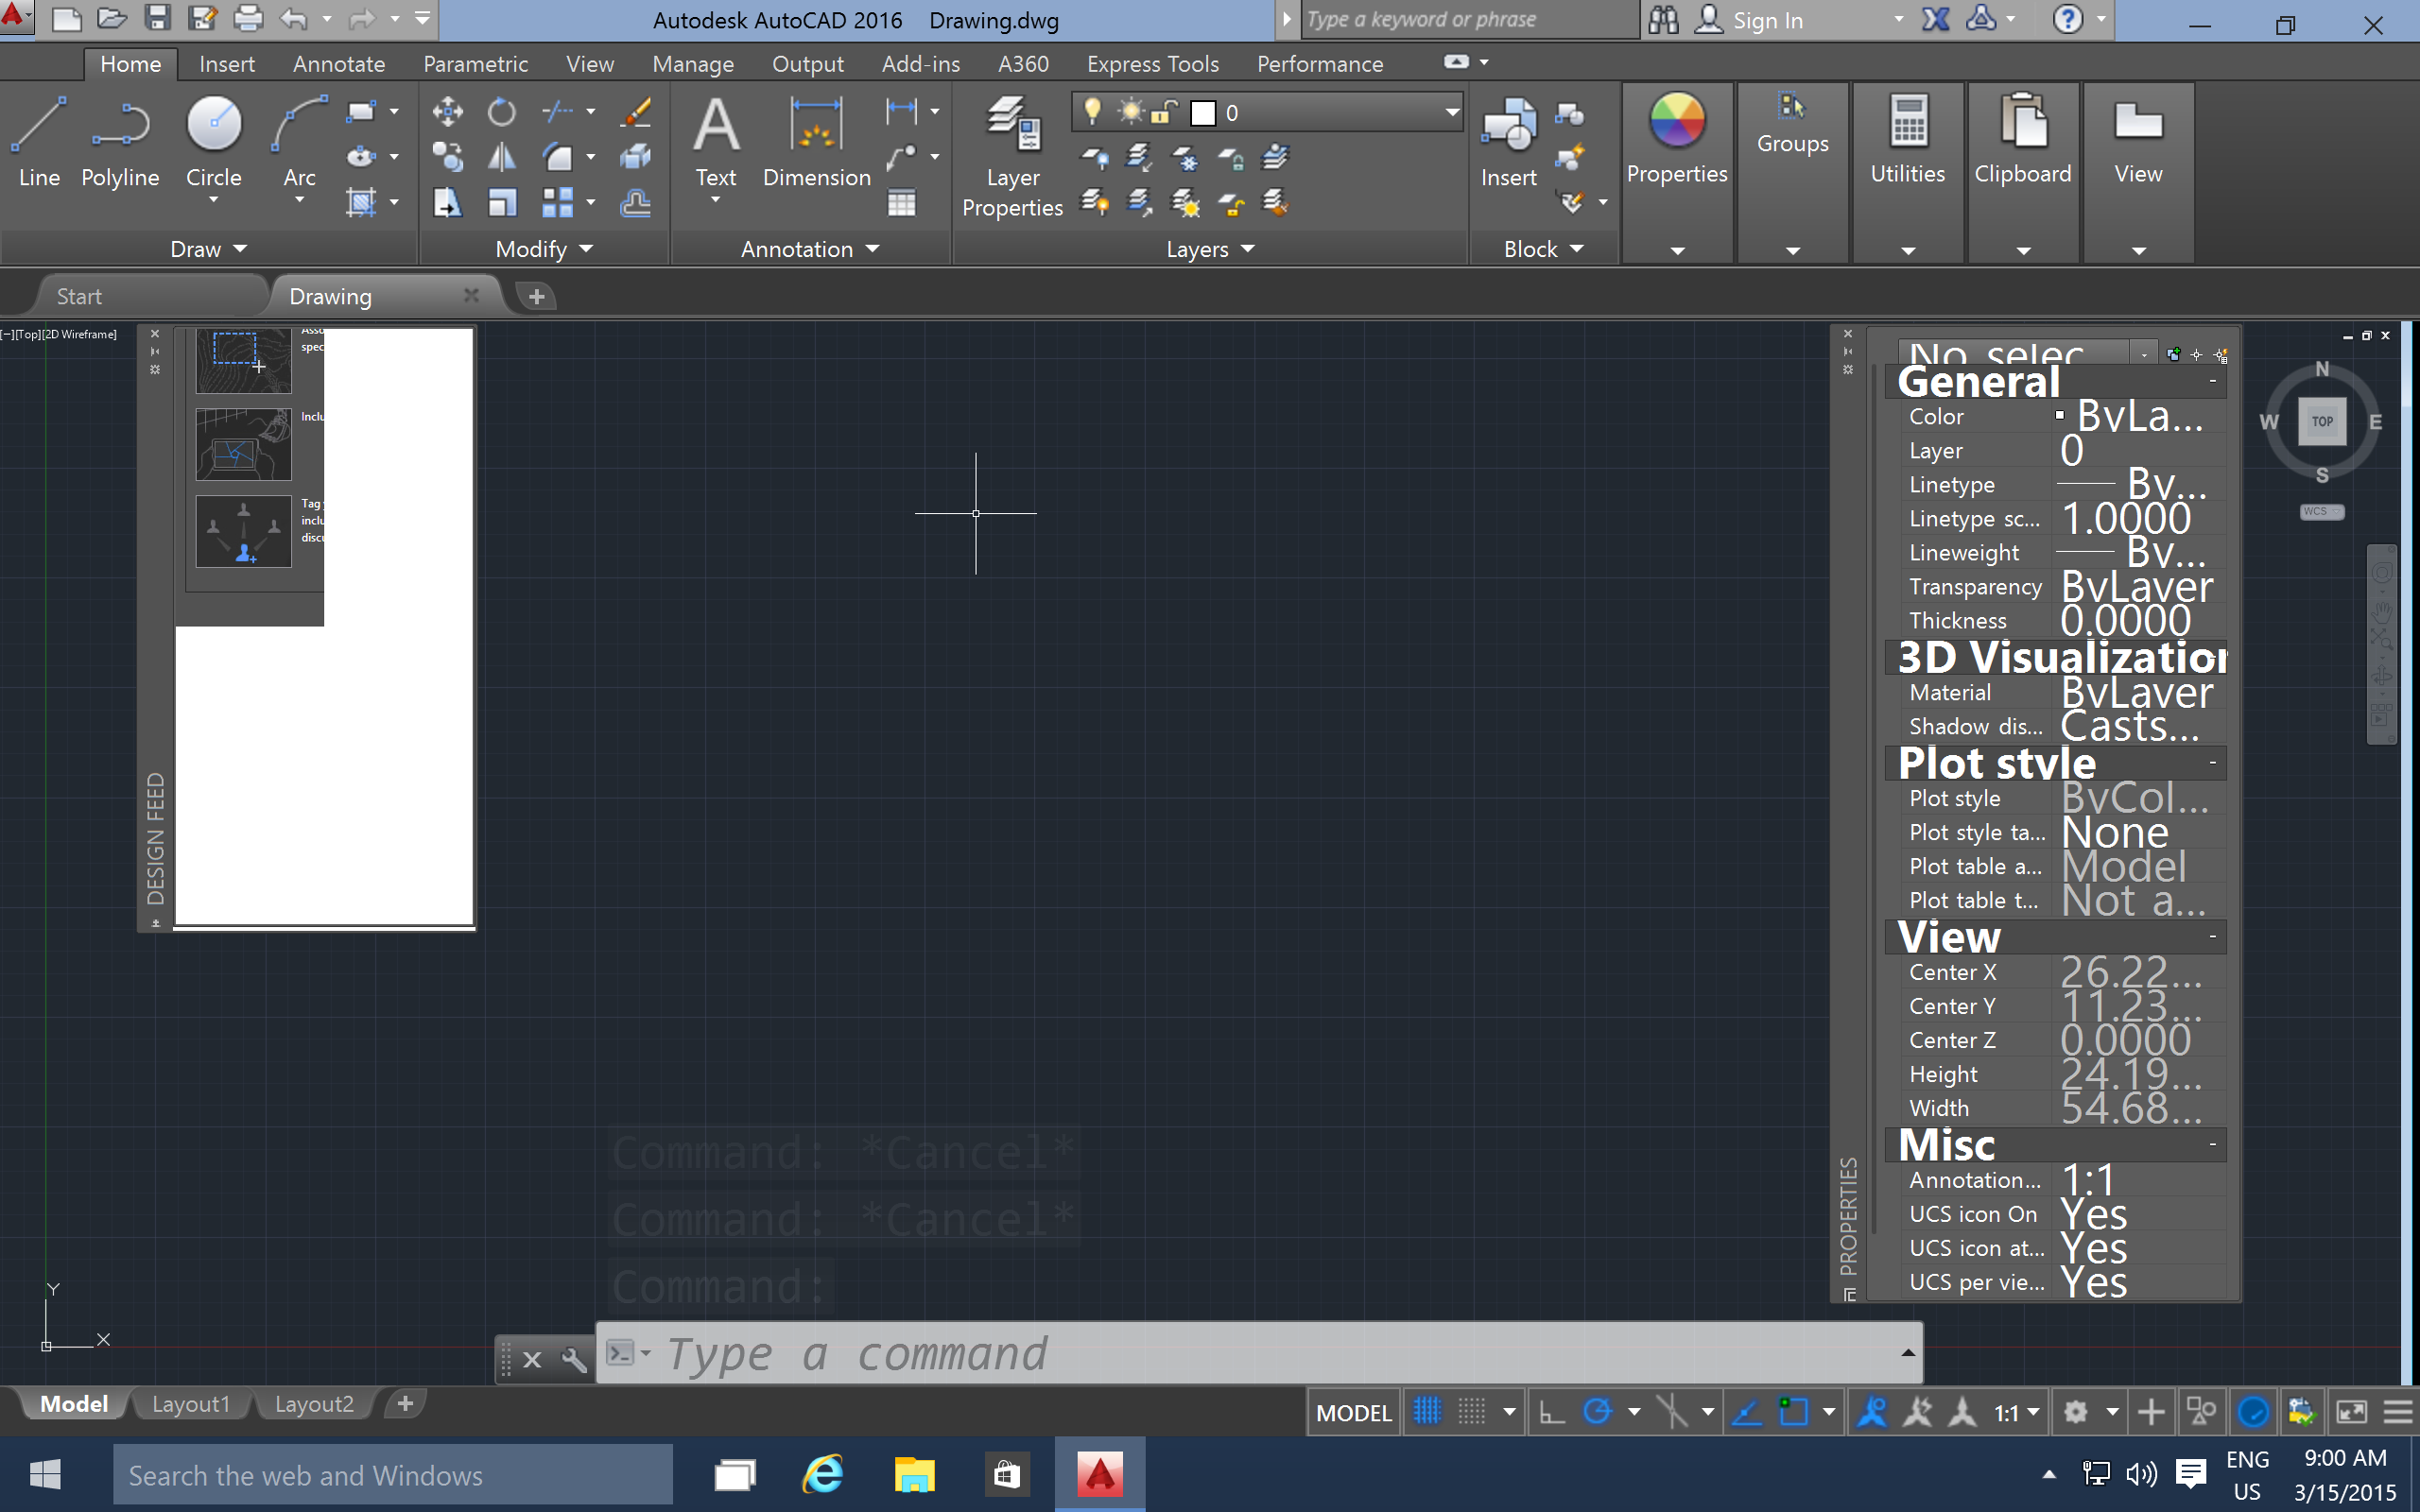 how to open tool palette in autocad 2016